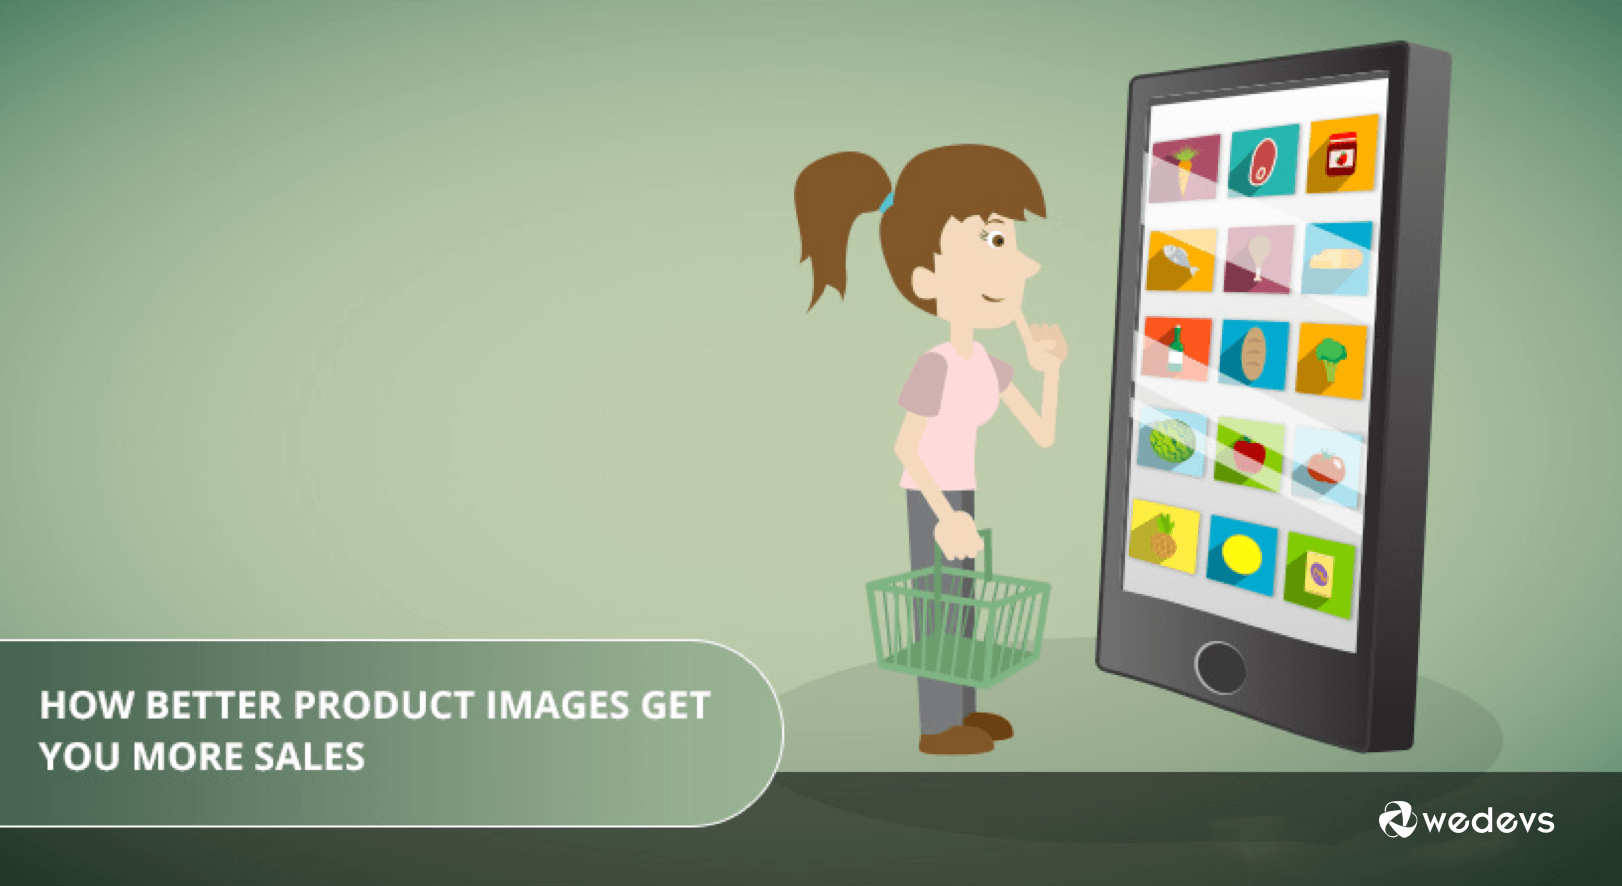 How Better Product Images Get You More Sales